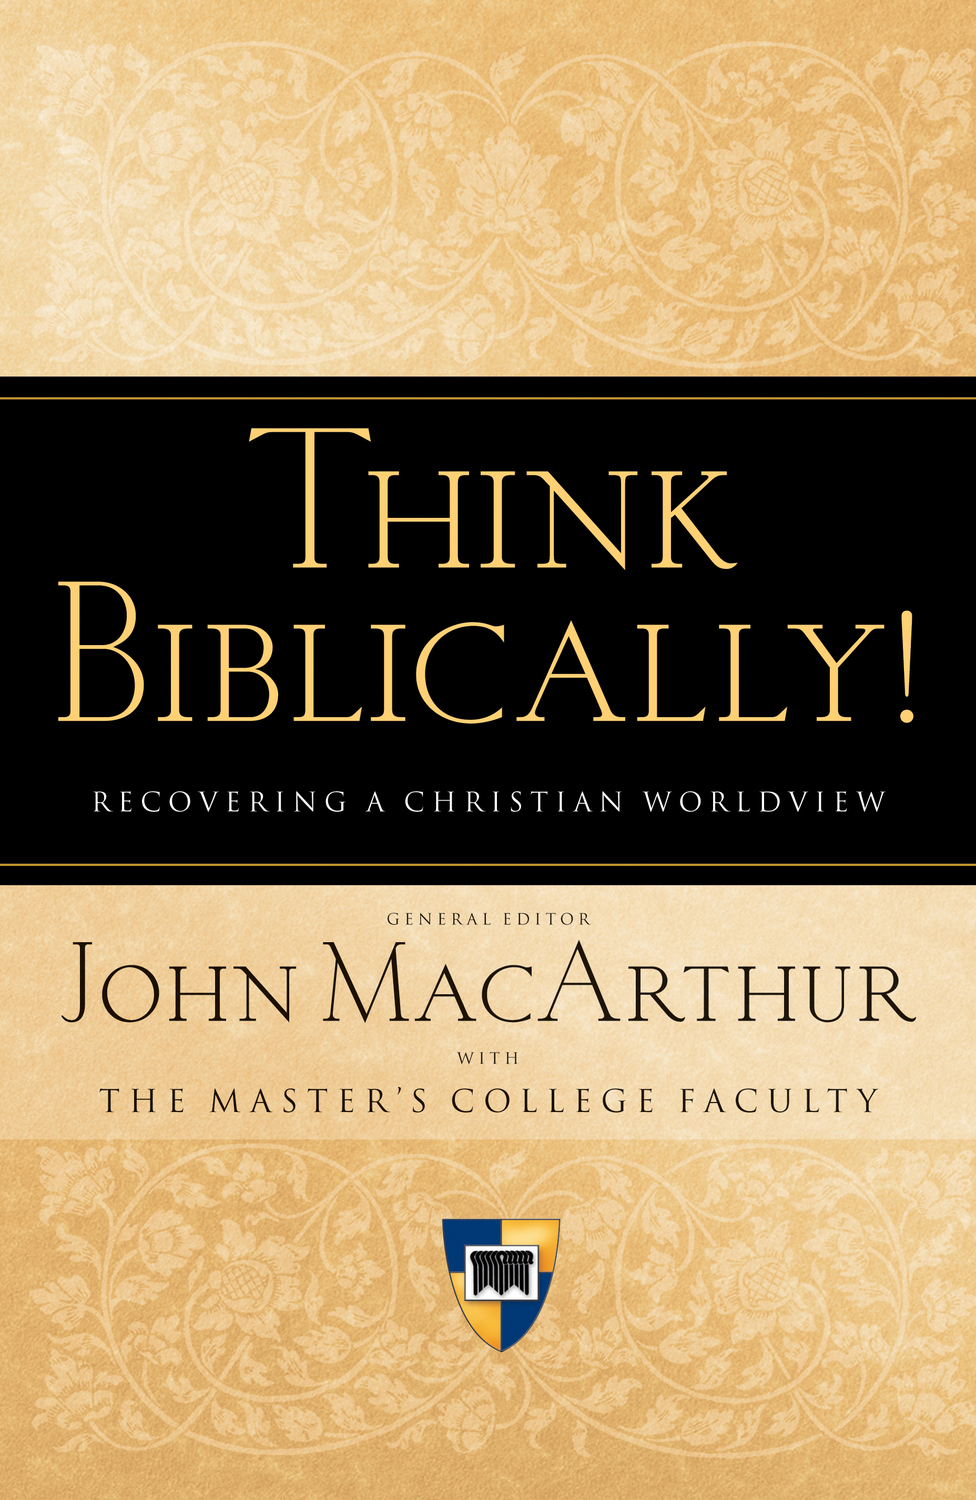 Think Biblically!